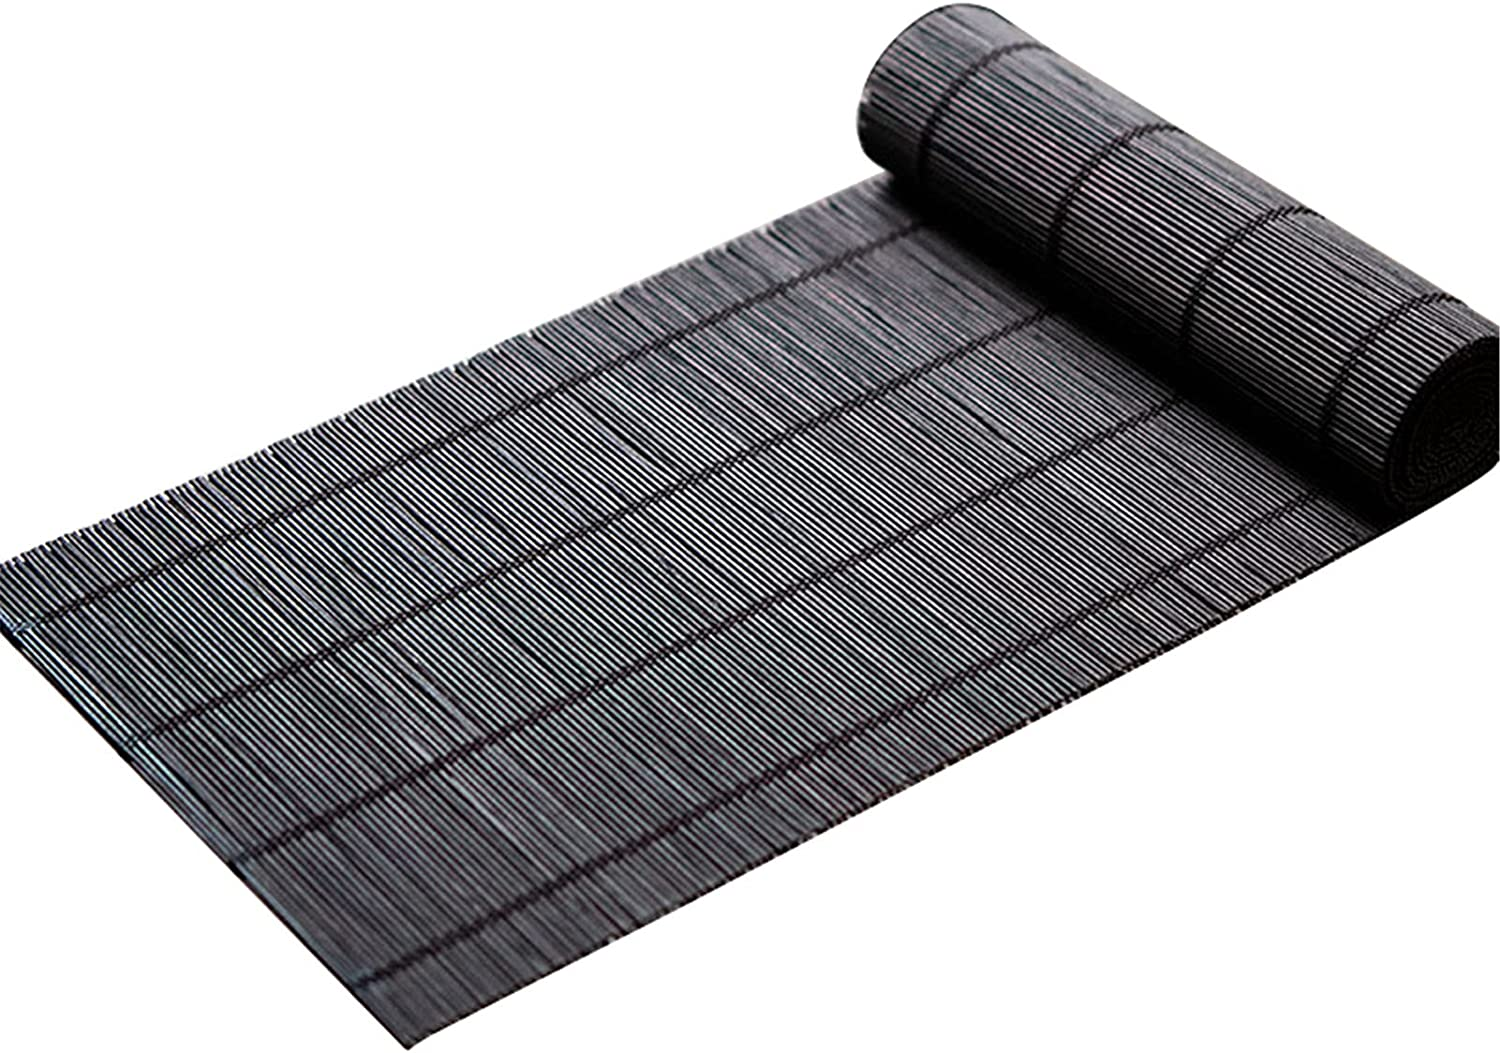 JLCP Japanese Style Bamboo Table Runner Black Limited price sale 40Cm 30 Cheap bargain Width 20